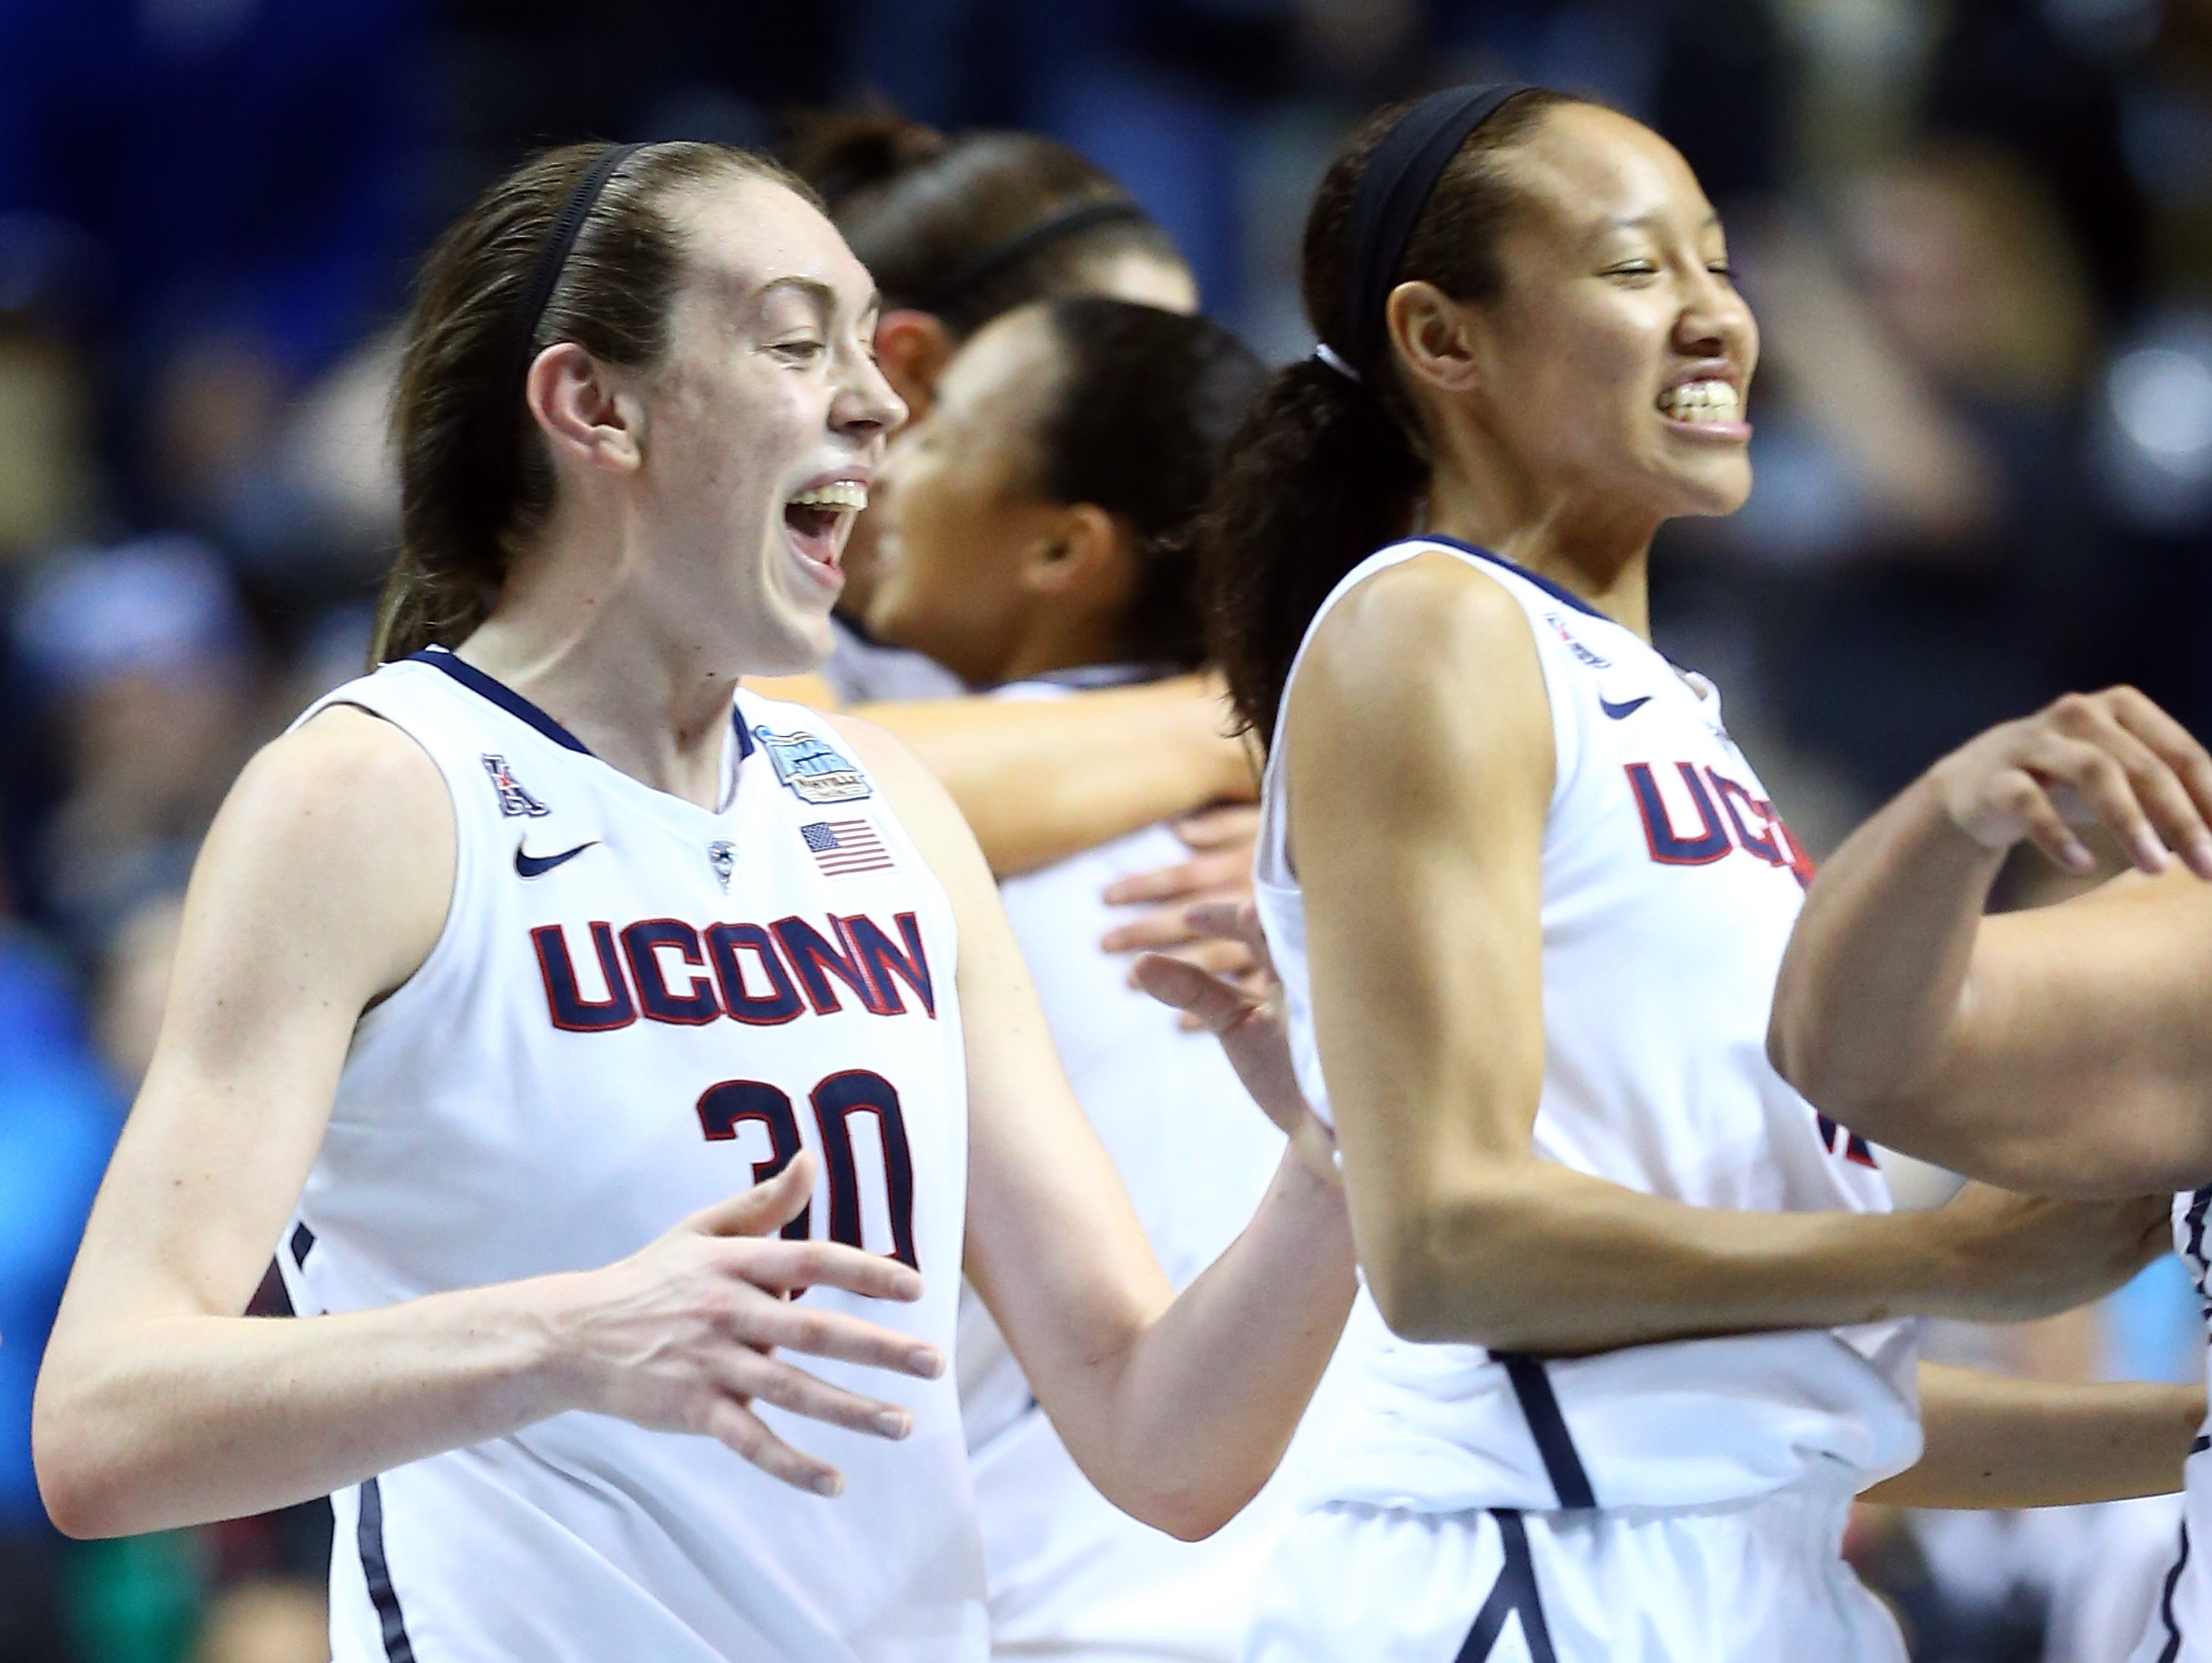 """Breanna Stewart of the Connecticut Huskies celebrates with her teammate Saniya Chong of Ossining after defeating the Notre Dame Fighting Irish in the 2014 NCAA Women's Final Four Championship at Bridgestone Arena in Nashville, Tennessee. Stewart and Chong have a """"special bond,"""" according to teammates."""